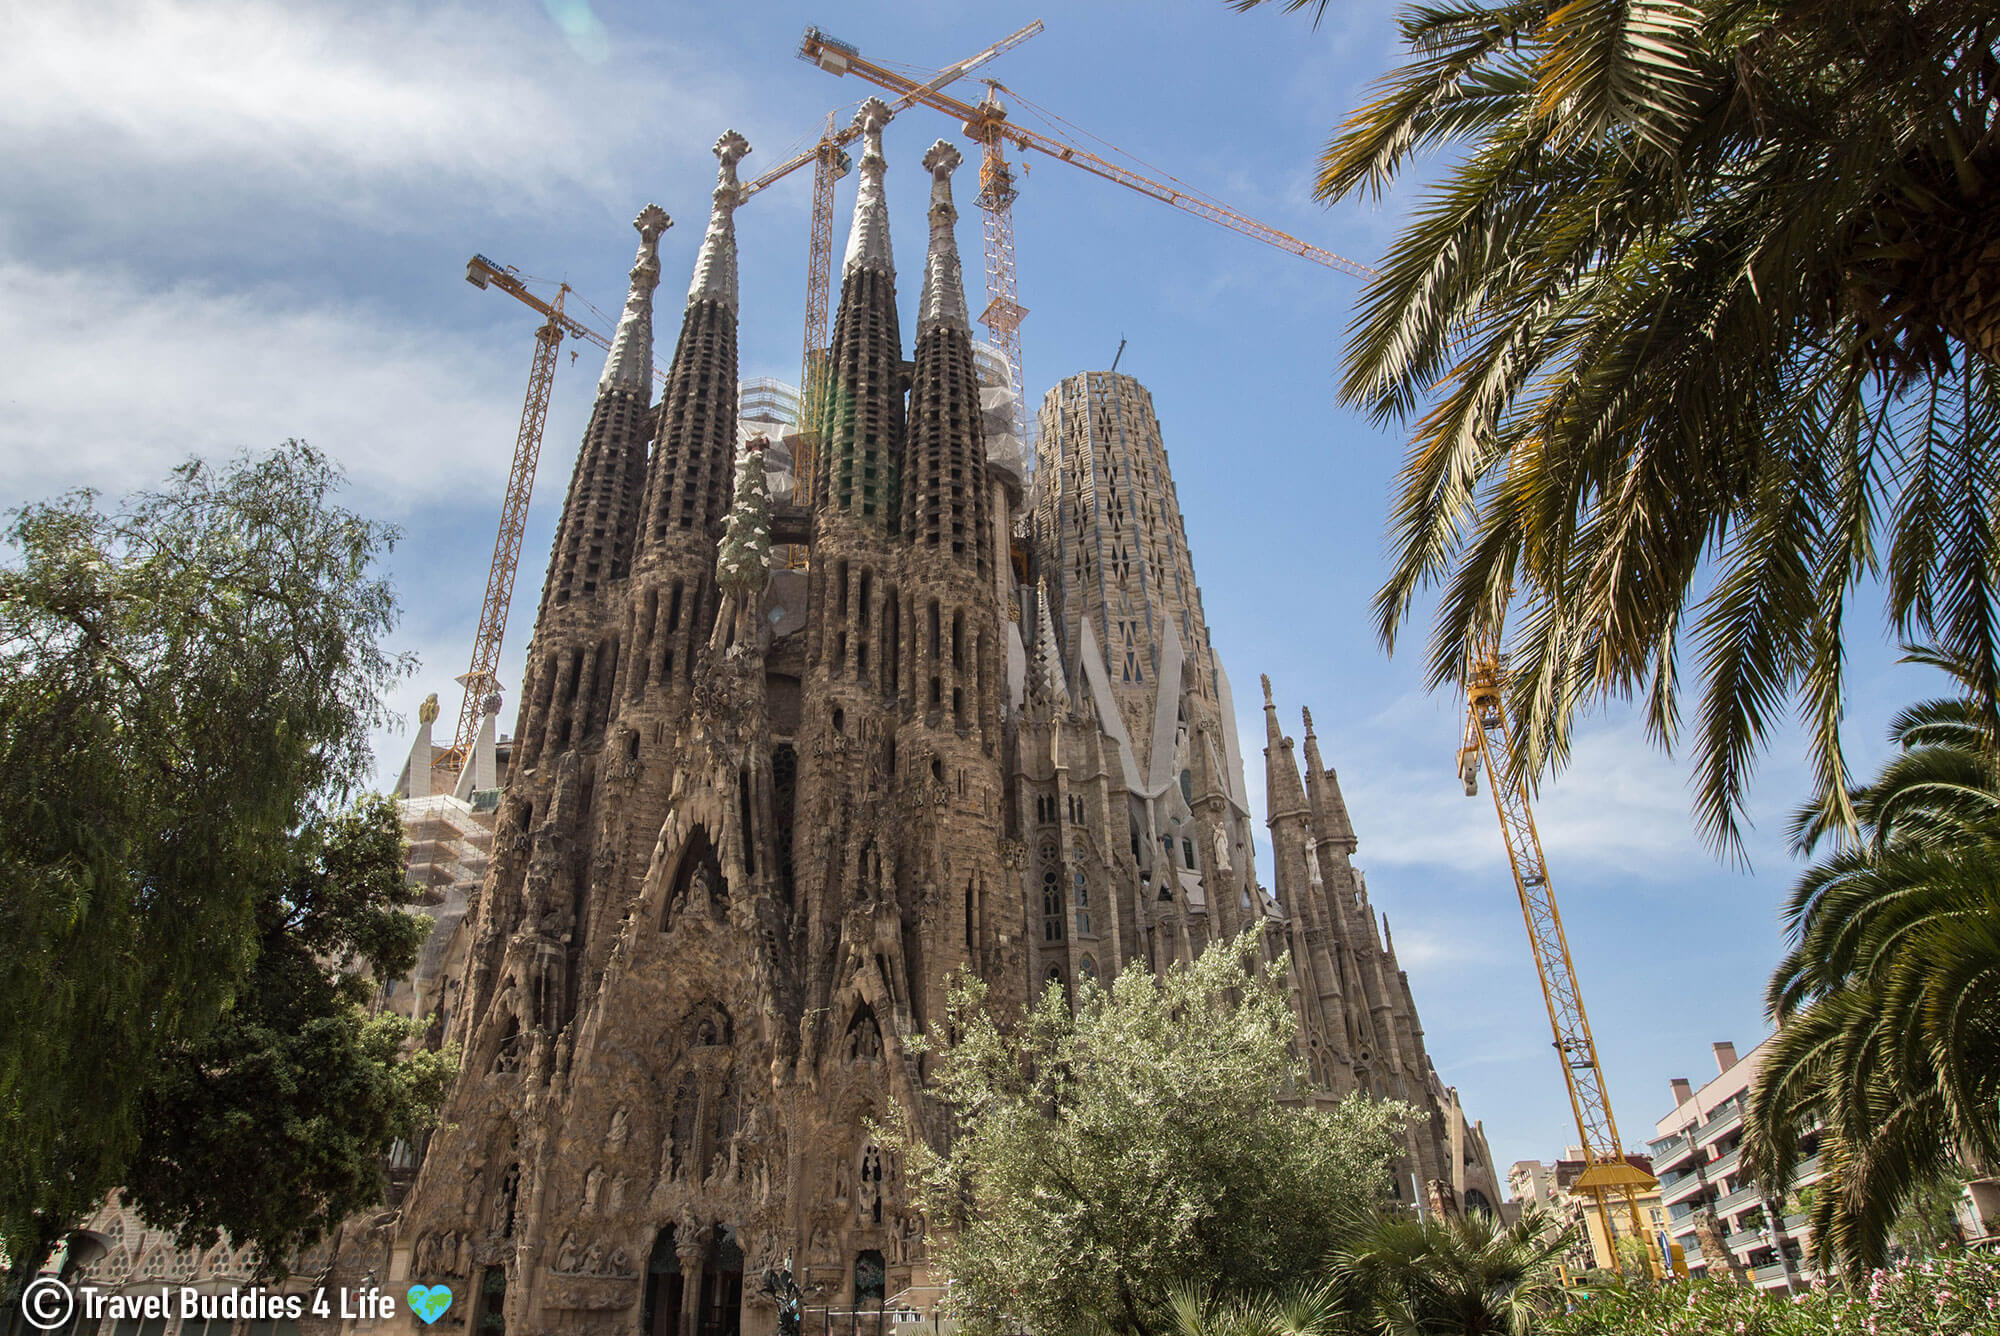 Sagrada Familia Catherdral, Gaudi's temple in Barcelona Spain, Europe